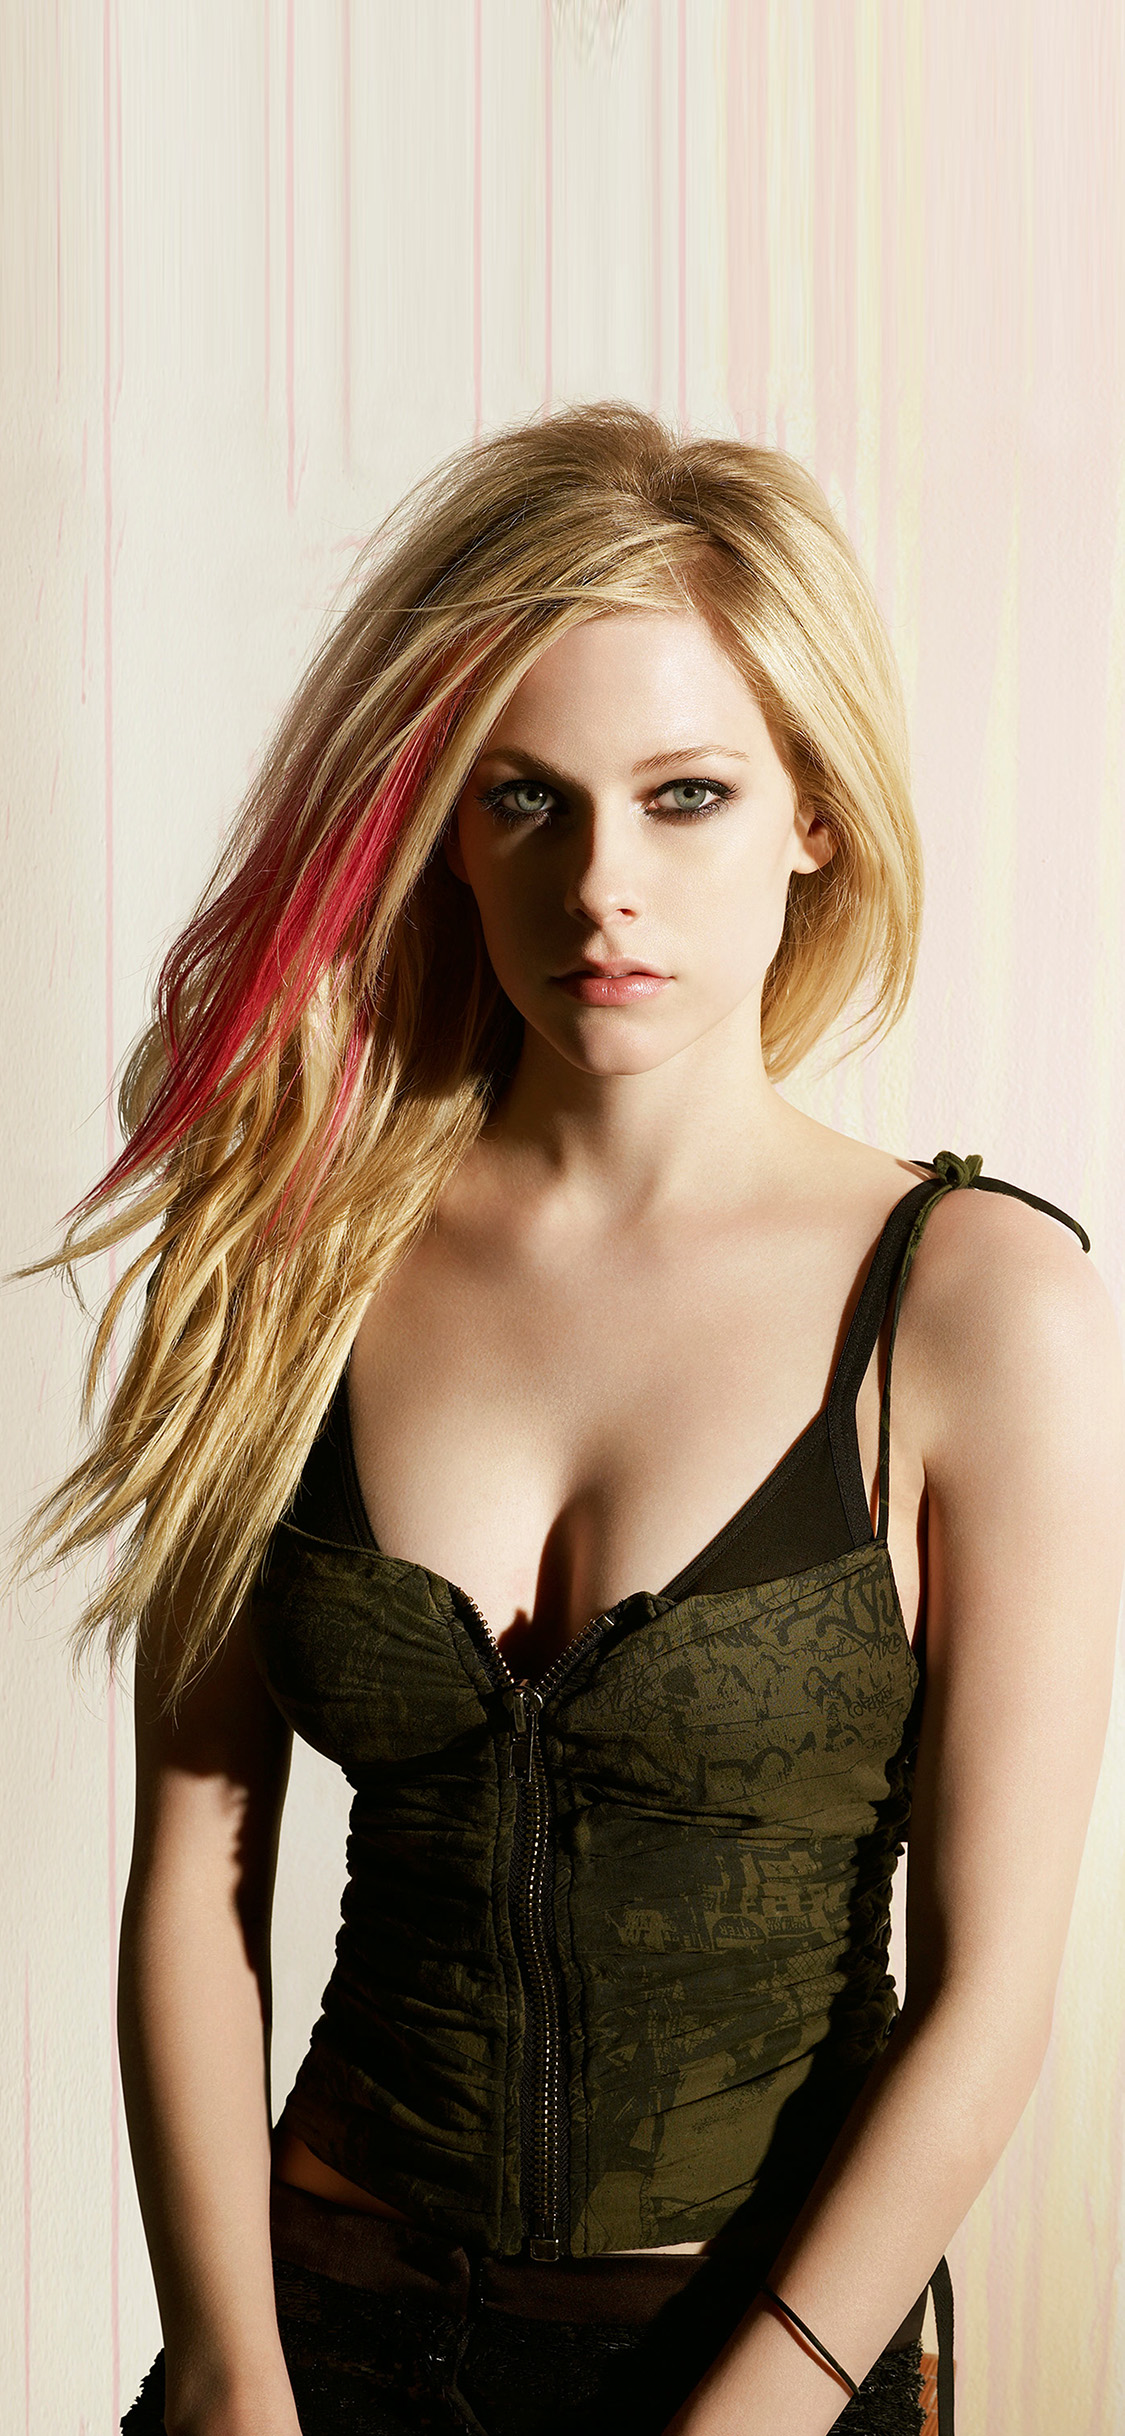 iPhonexpapers.com-Apple-iPhone-wallpaper-hp70-avril-lavigne-girl-celebrity-singer-music